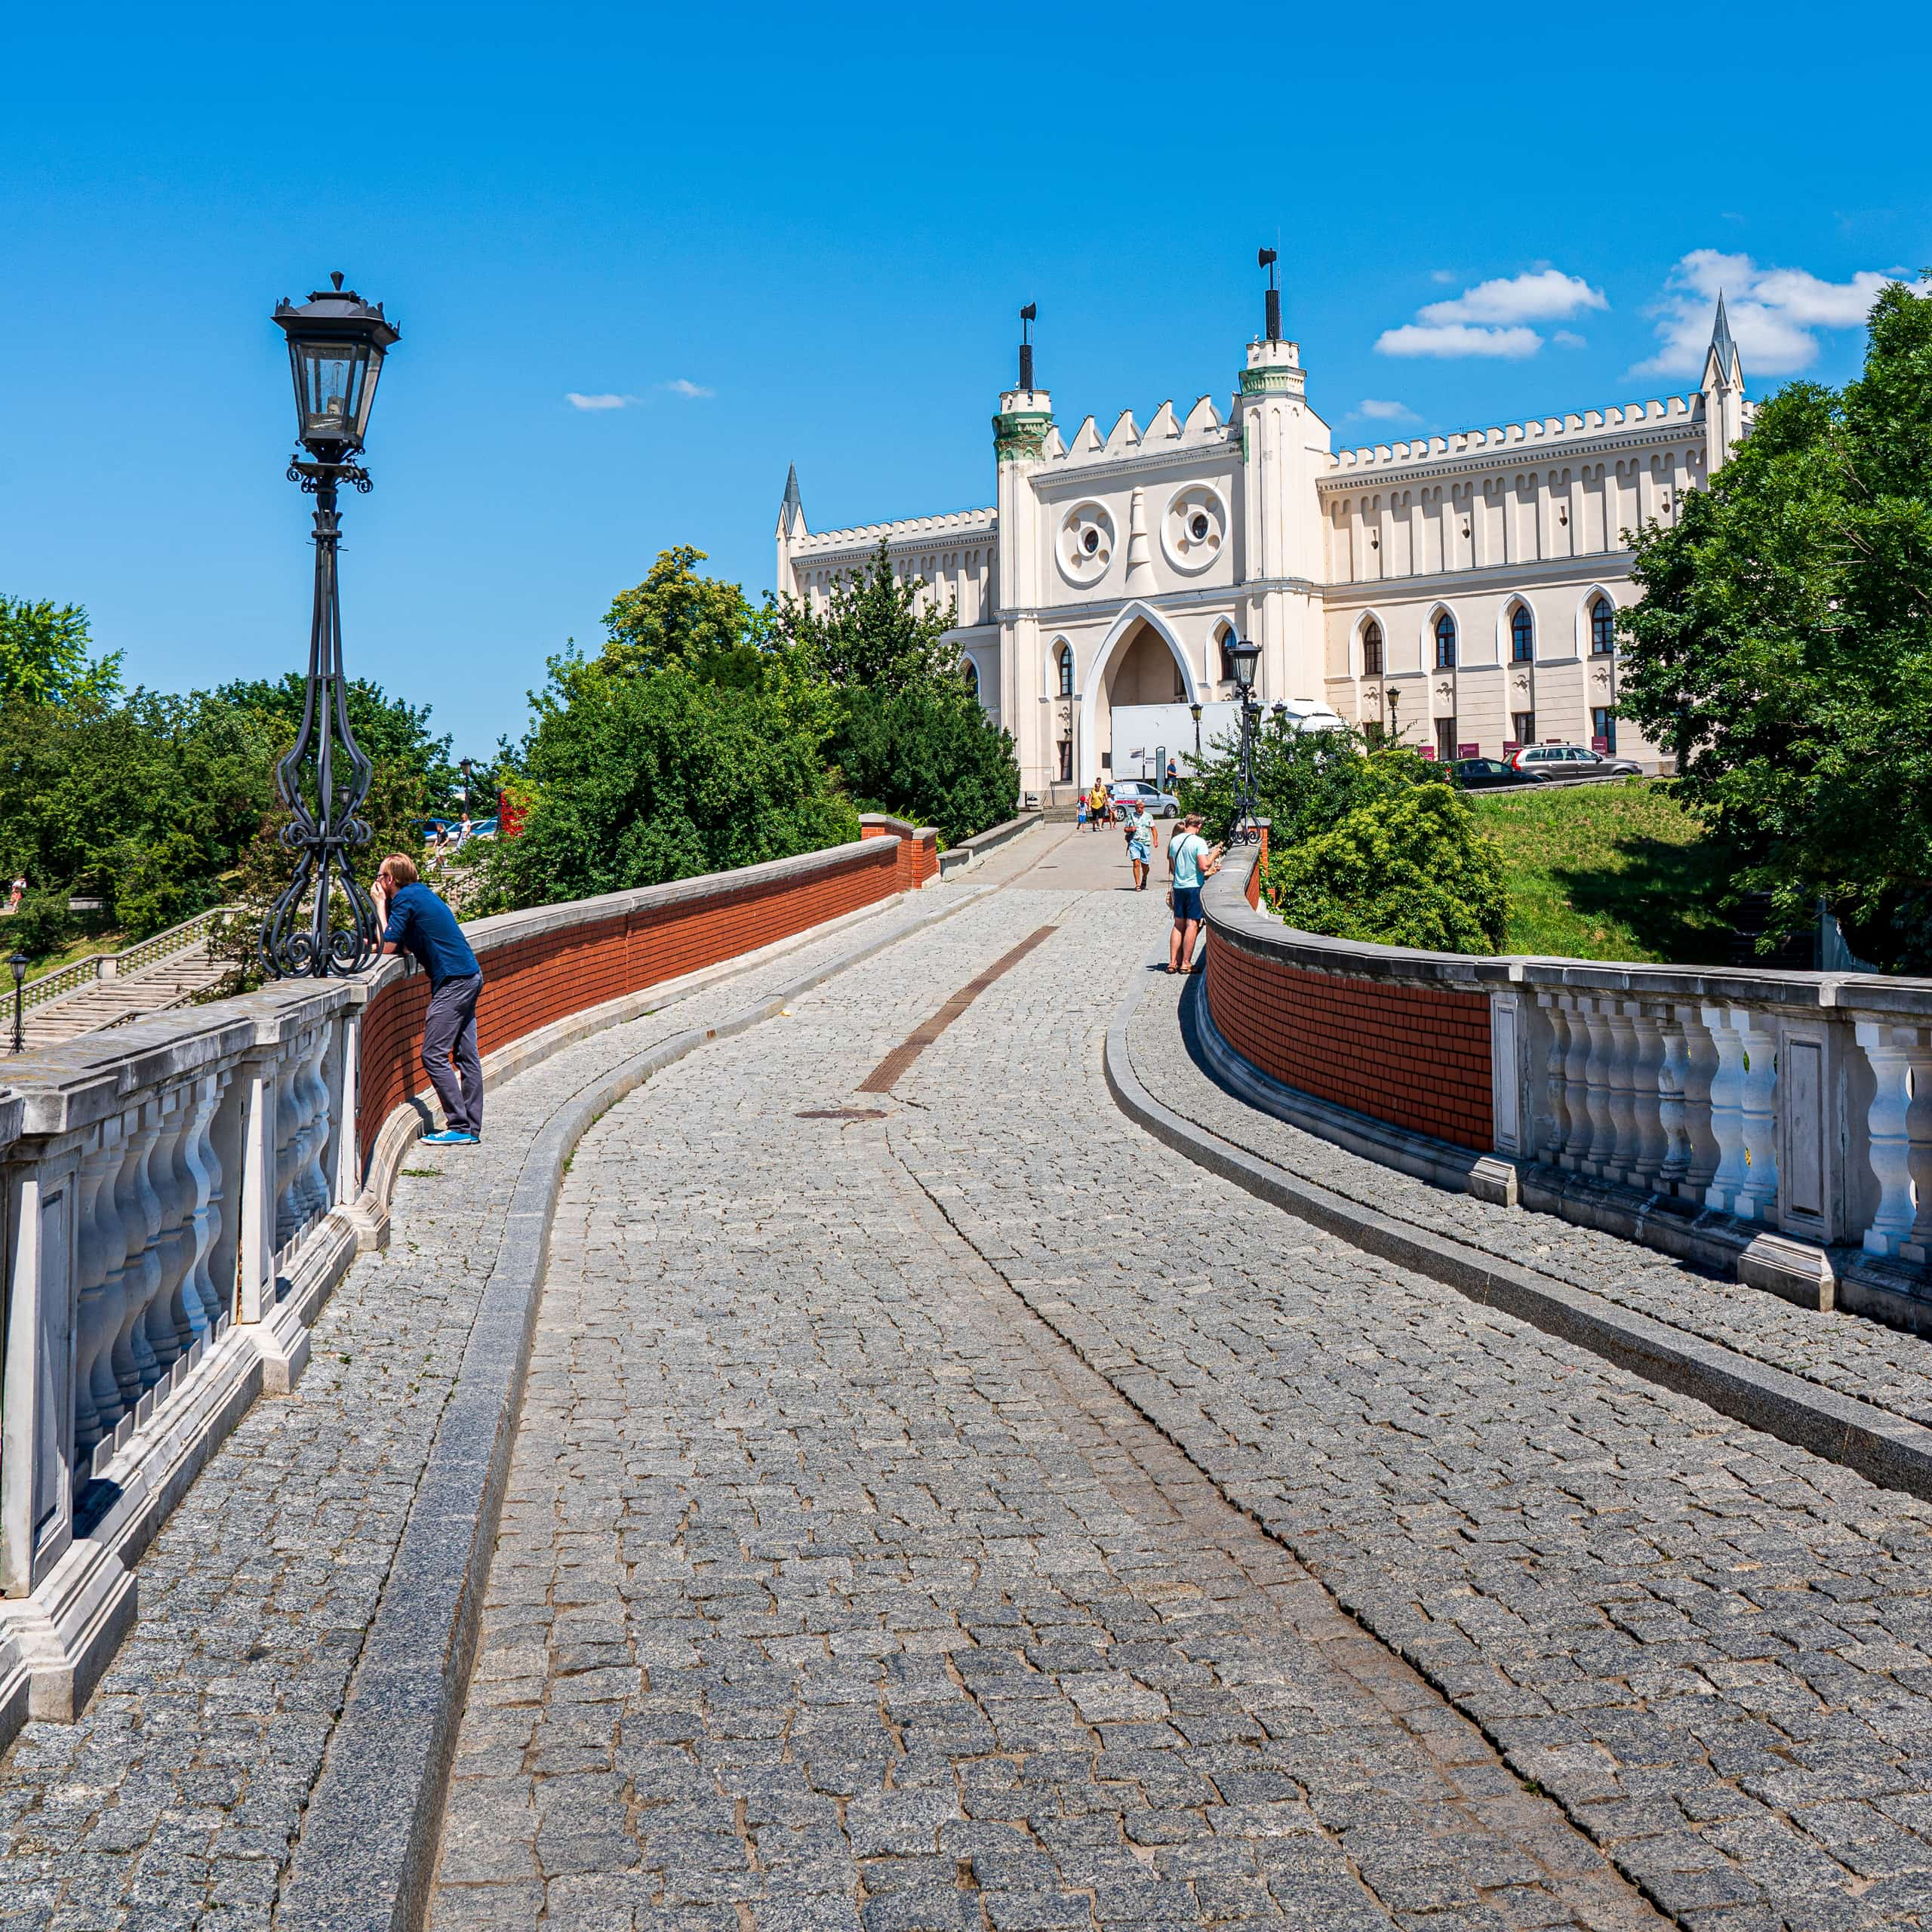 Lublin Castle | f/10 1/200sec ISO-100 24mm  | ILCE-7RM3 | 2019-06-24 11:50:19